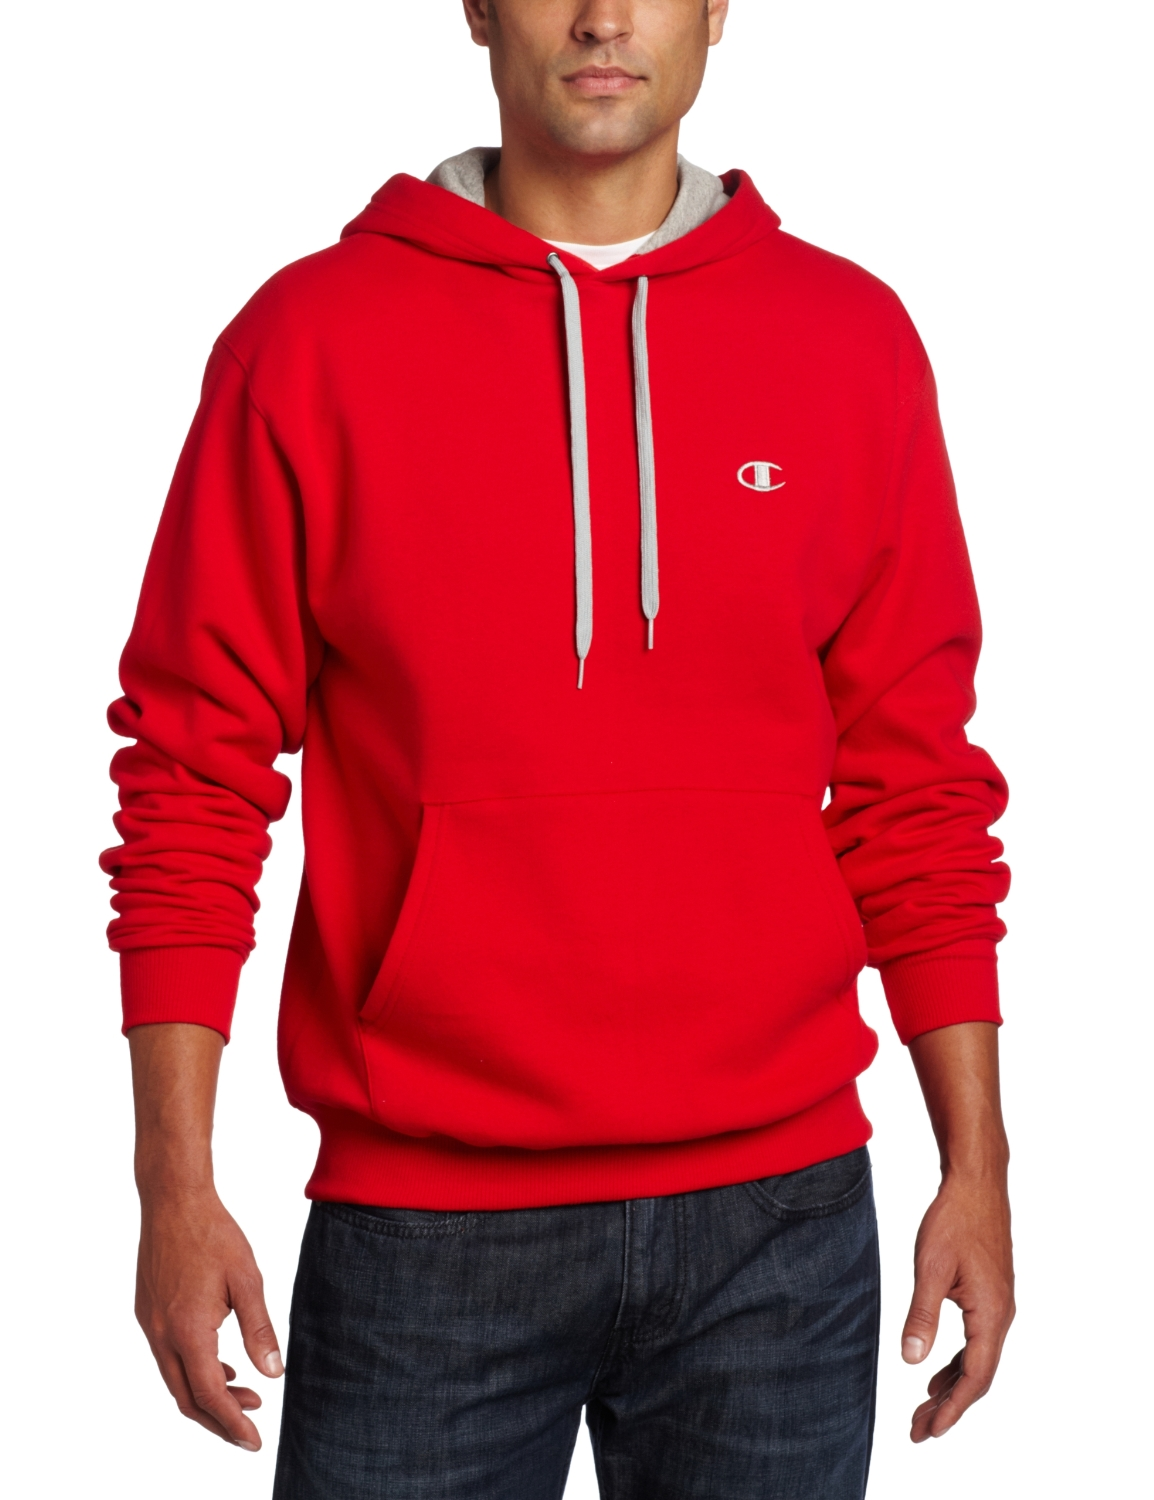 Shop the Latest Collection of Men's Pullover Hoodies & Sweatshirts in a variety of Styles & Colors at skachat-clas.cf & look sharp where ever you go. FREE SHIPPING AVAILABLE!